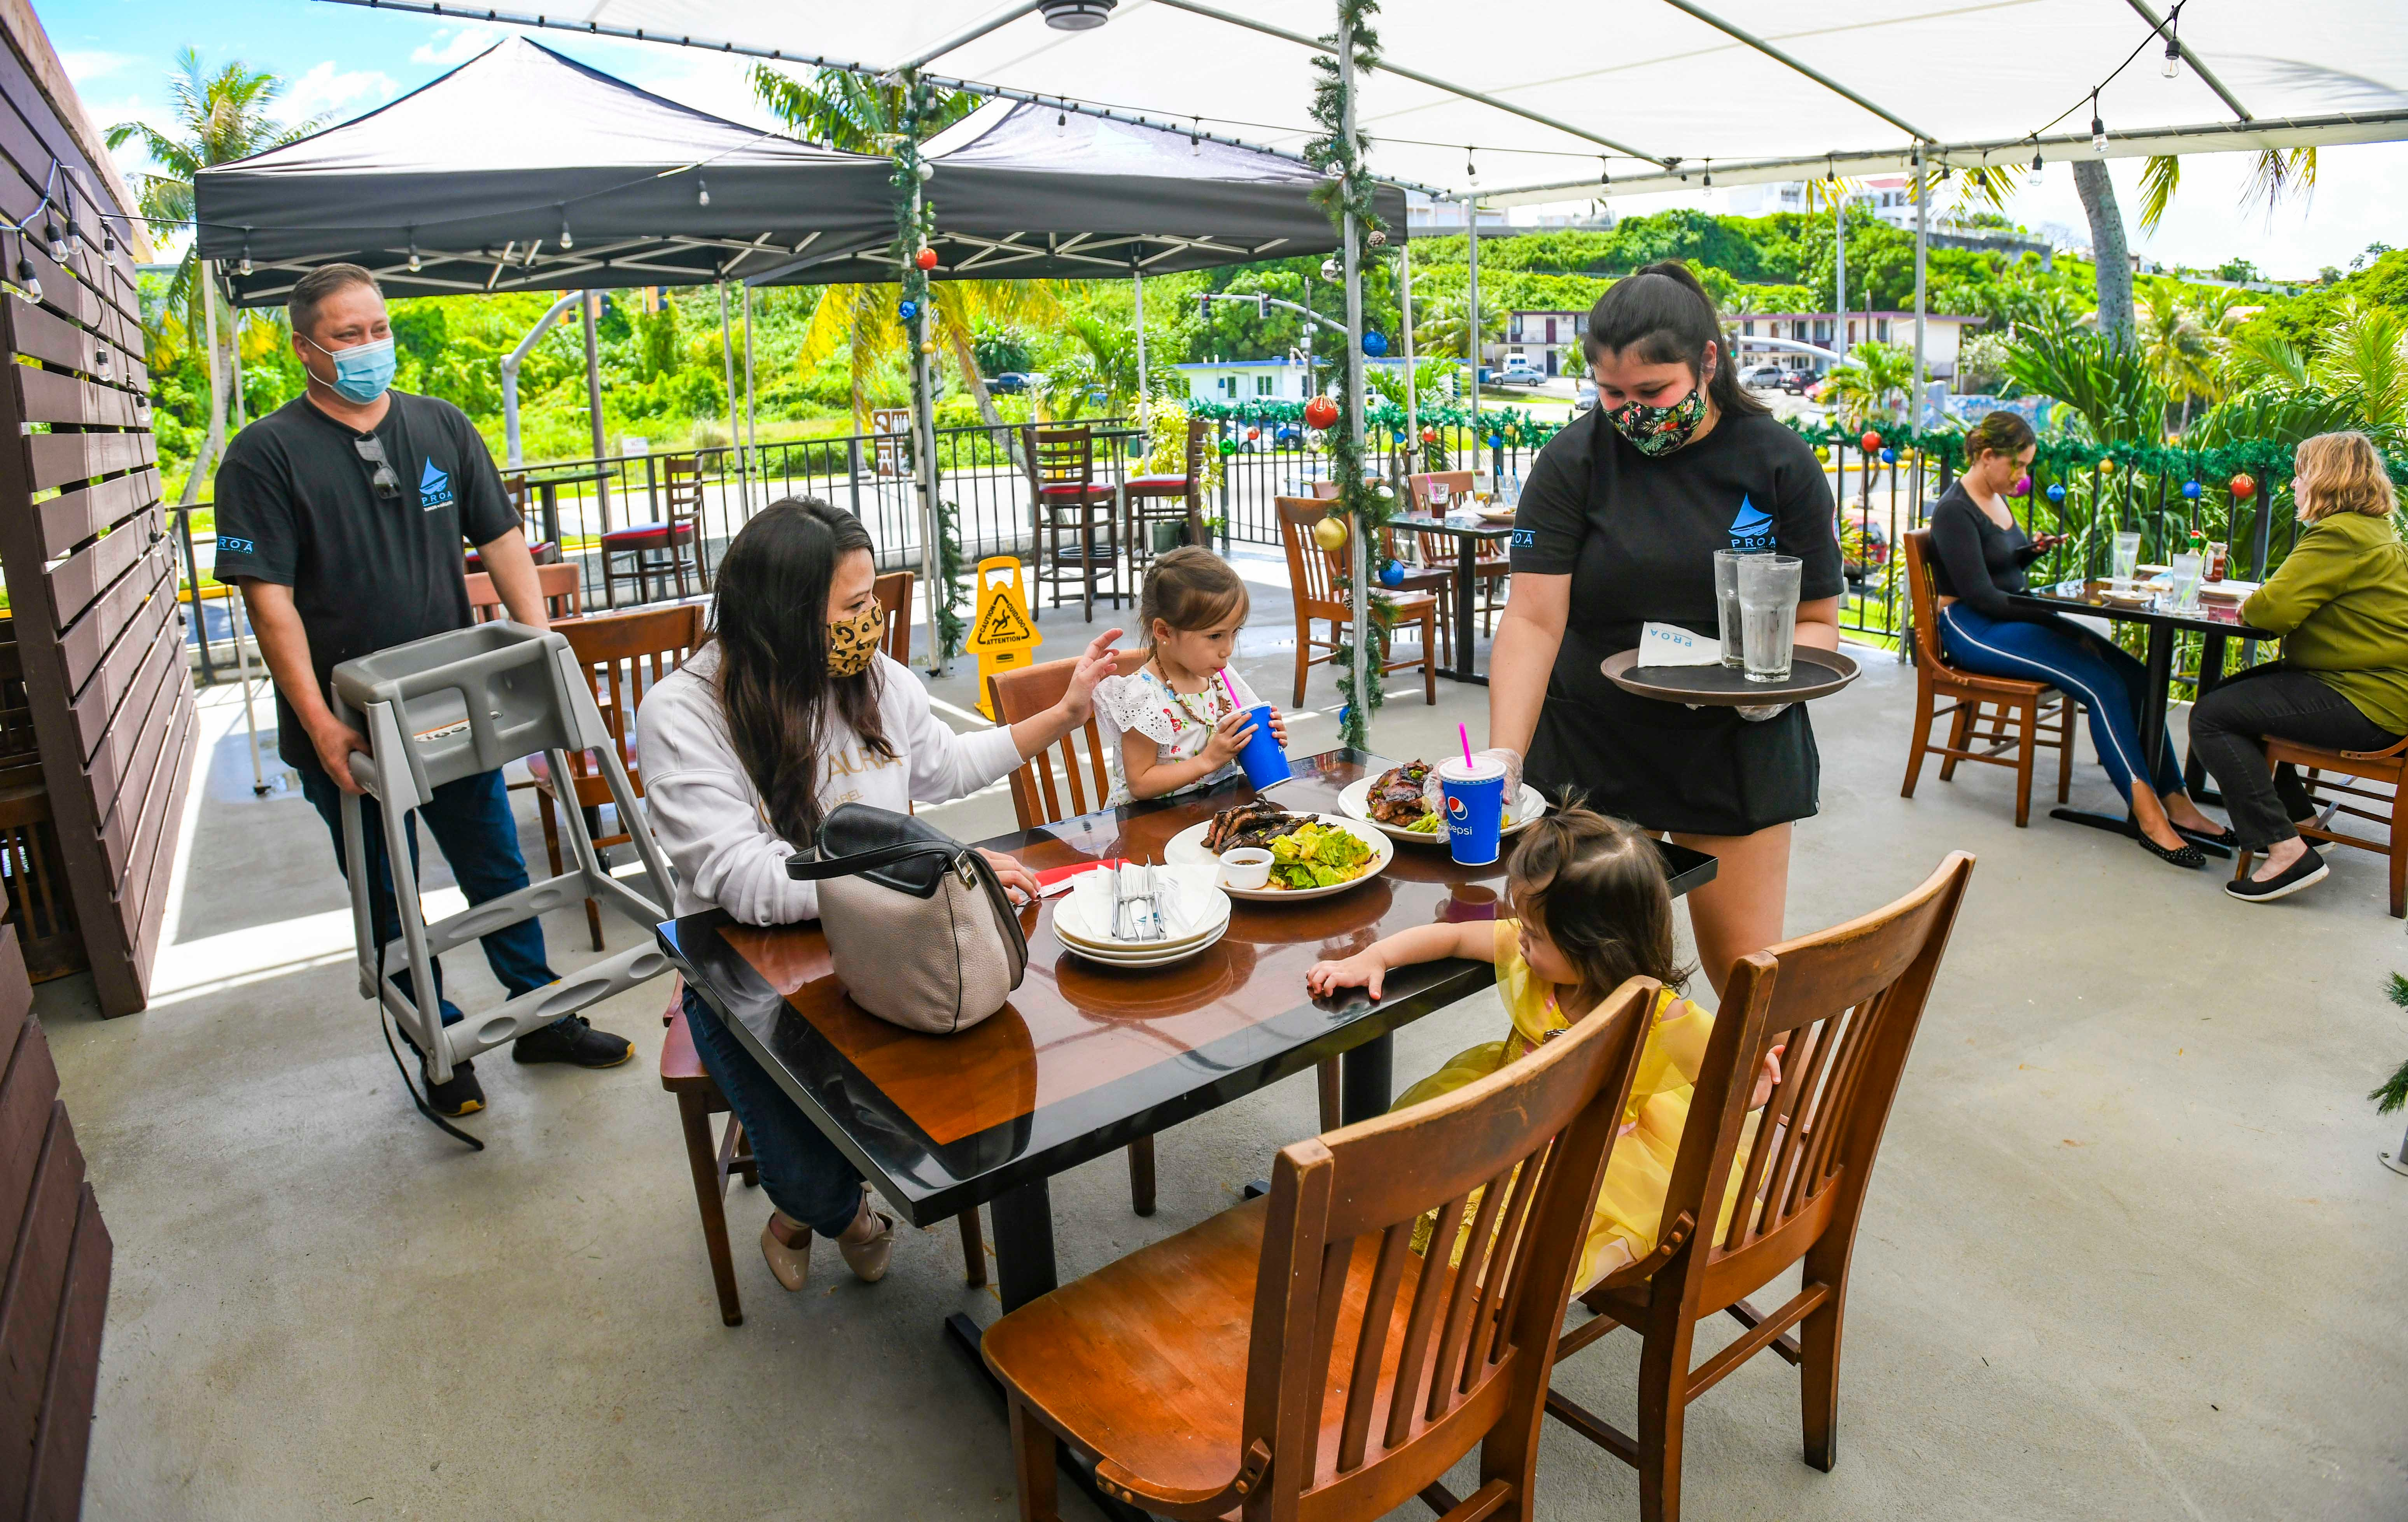 Michele Catahay Perez prepares to enjoy a midday meal with her daughters on the second-floor outdoor dining area of Proa Restaurant in Tumon, as Geoffery Perez, the girls' father and owner of the eatery, prepares to join them on Thursday, Dec. 10, 2020.